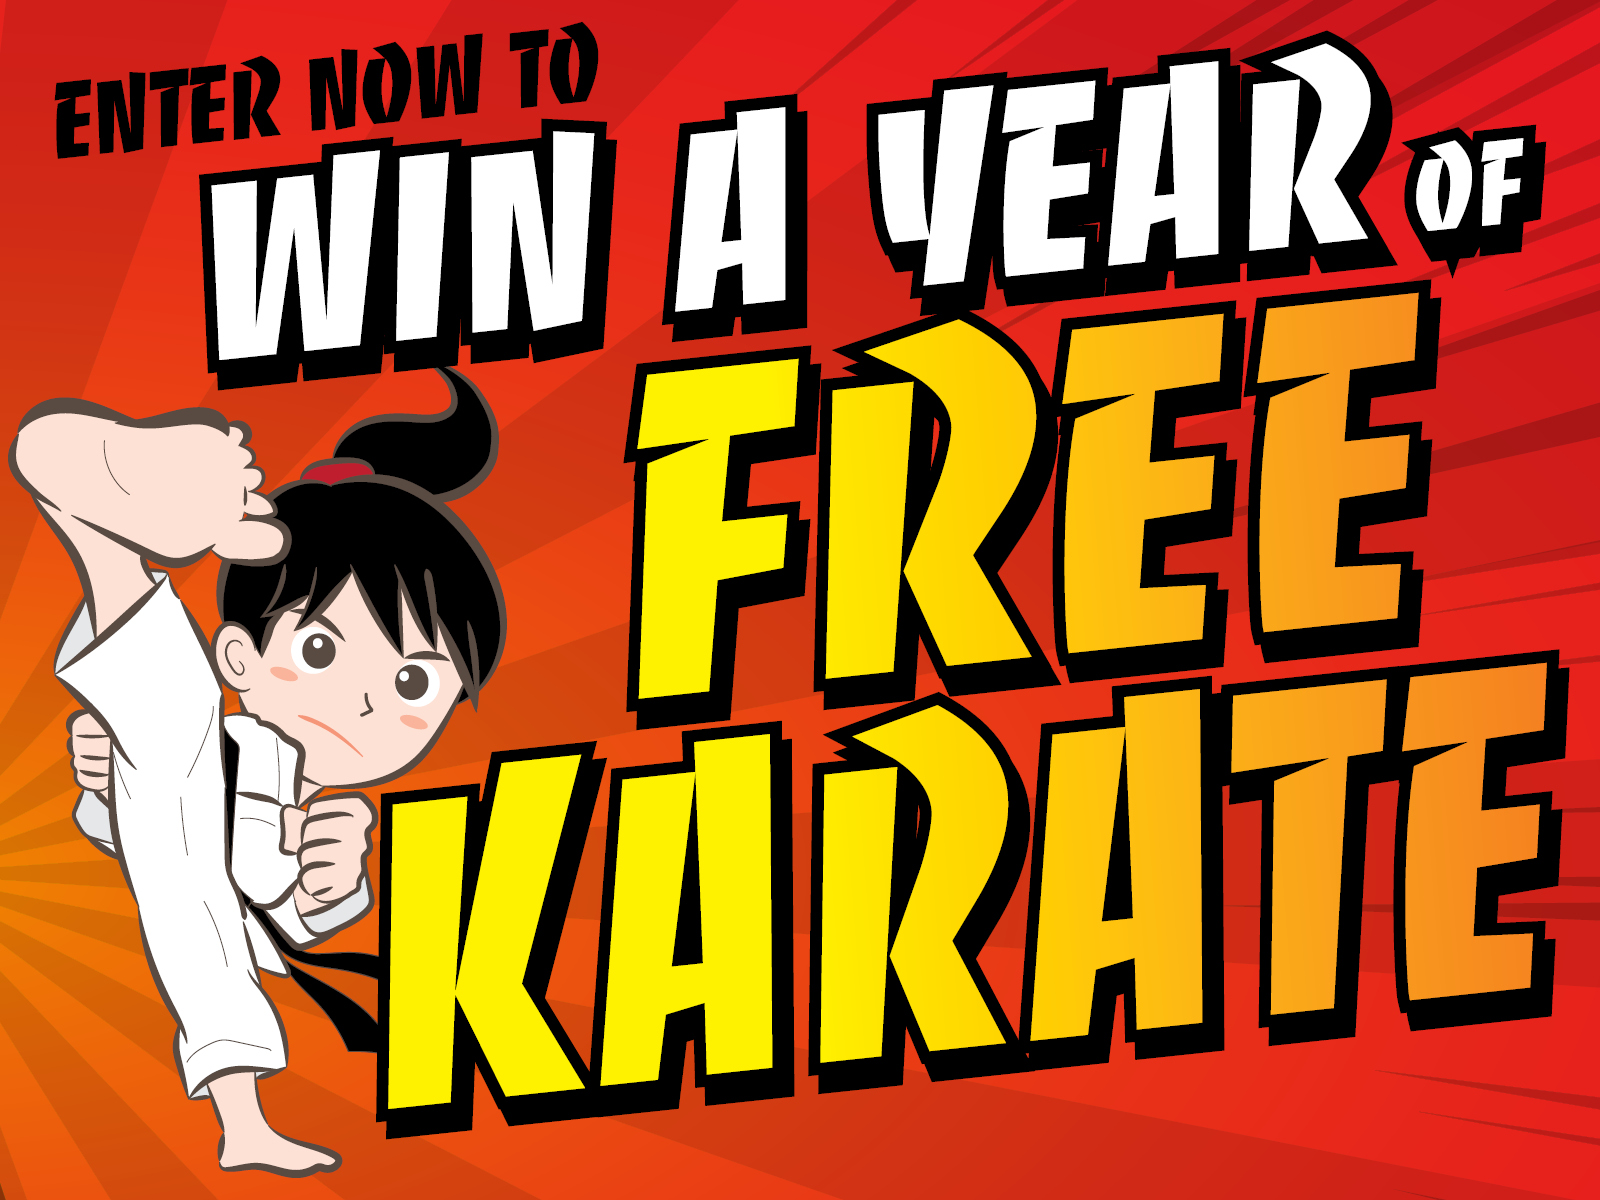 Win a YEAR of FREE KARATE!